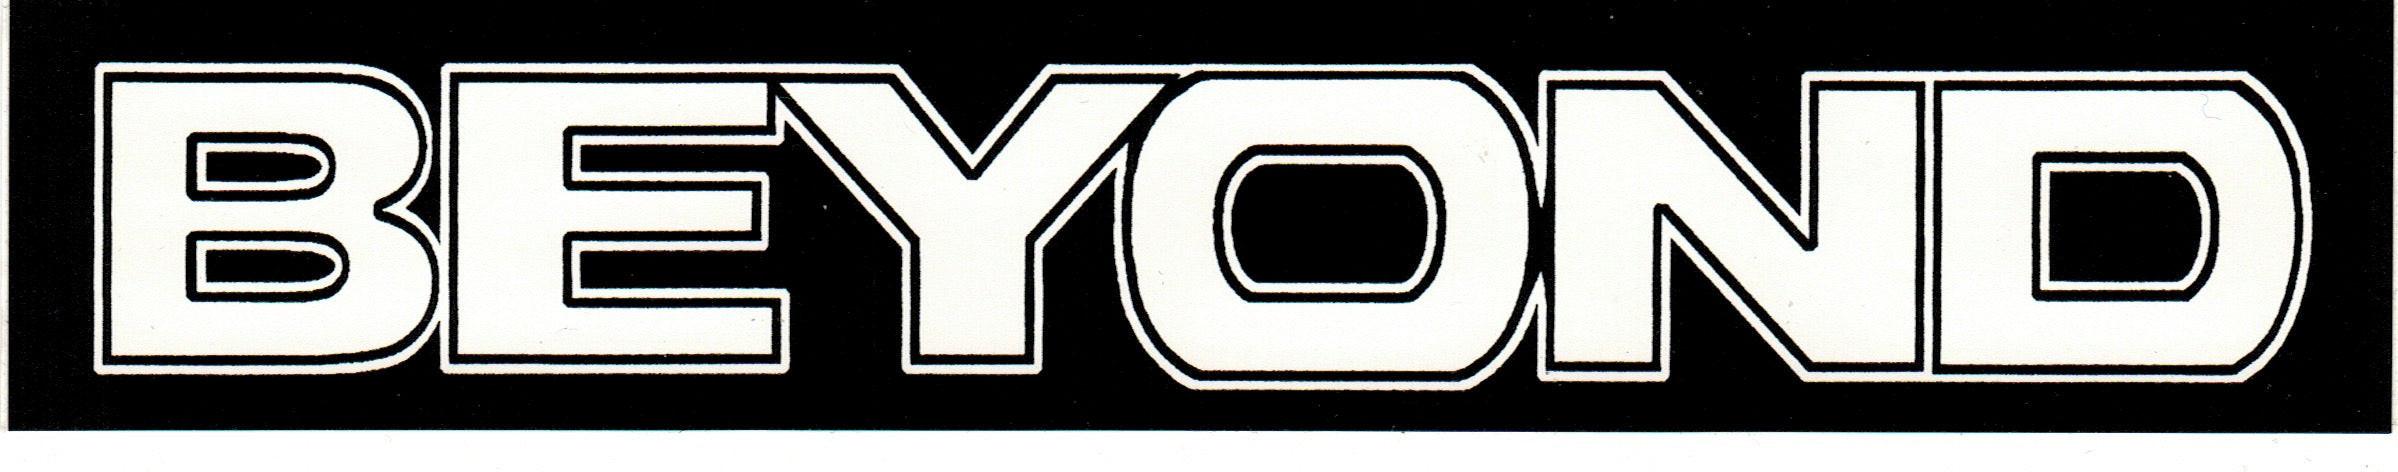 BEYOND 'Logo' Sticker